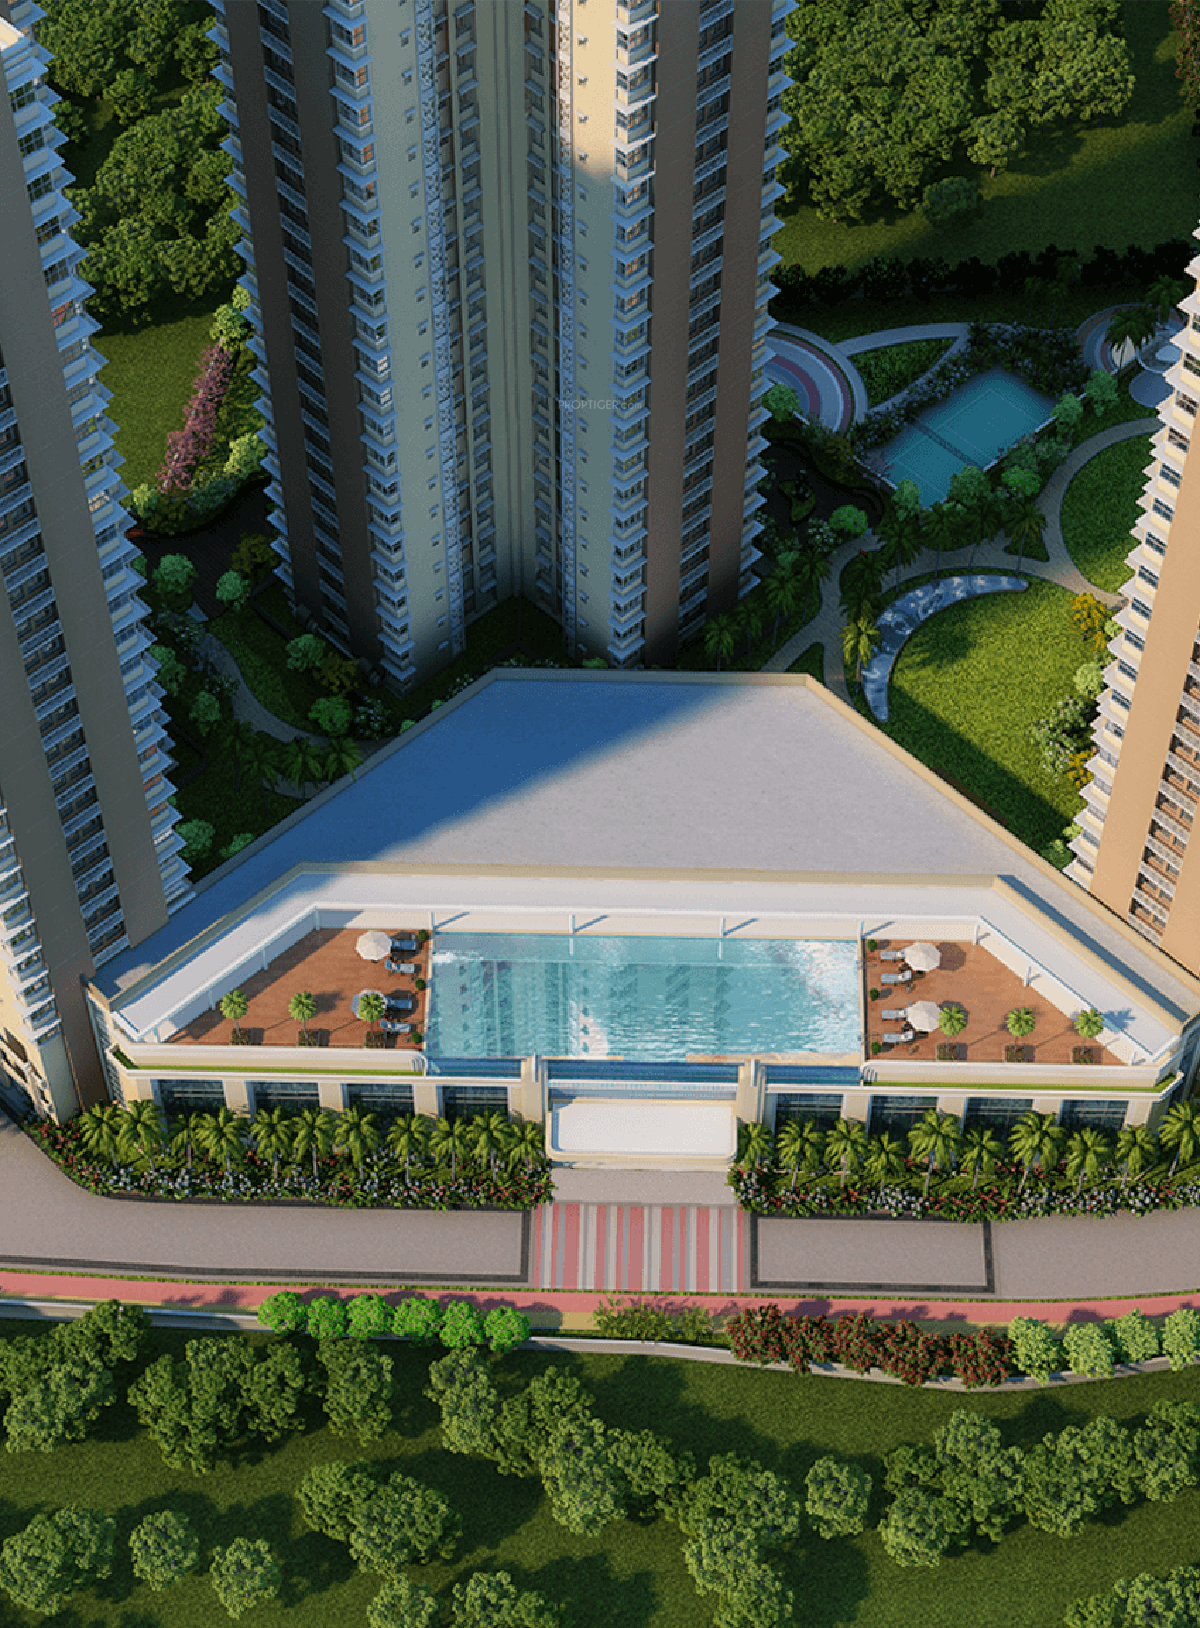 549 Sq Ft 1 Bhk 1t Apartment For Sale In Alcove New